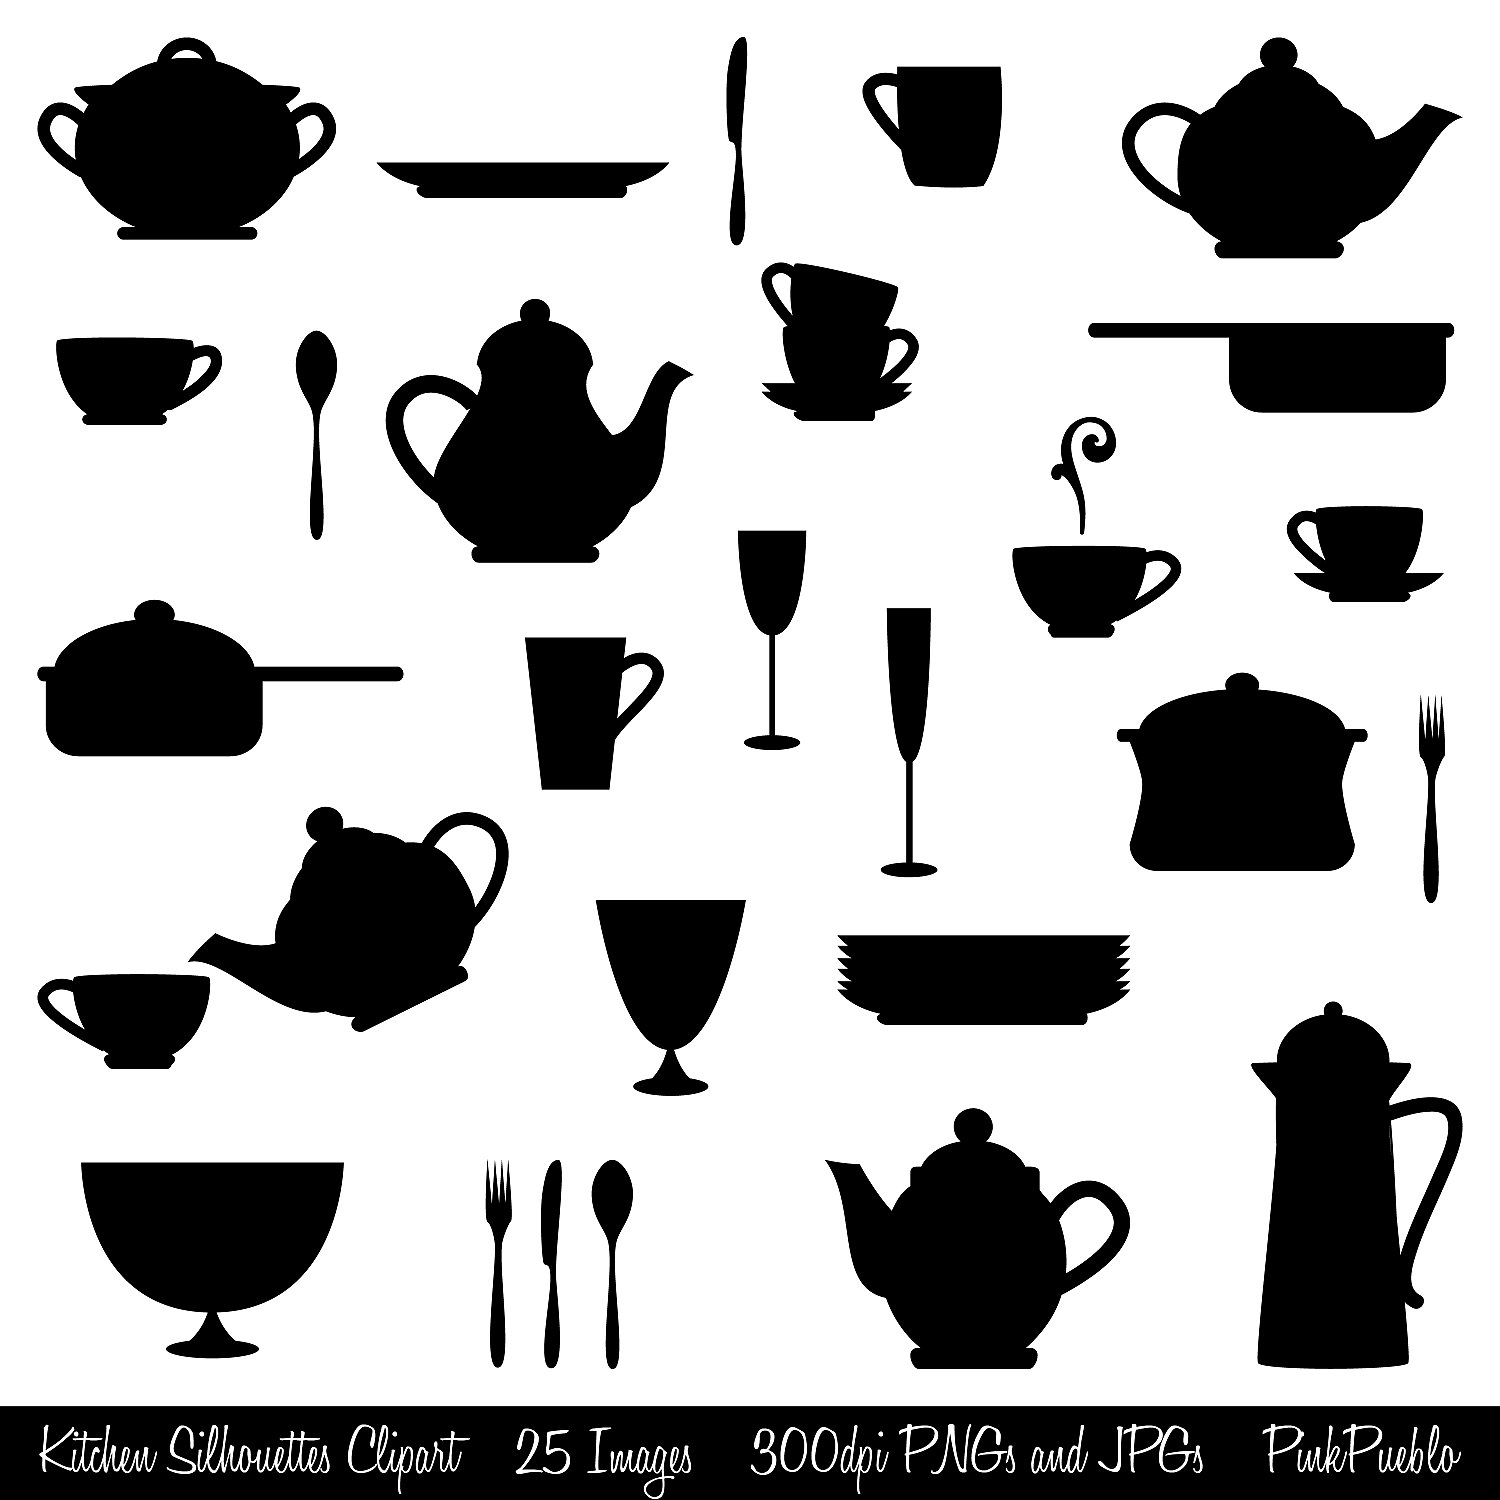 Silhouettes clipart #6